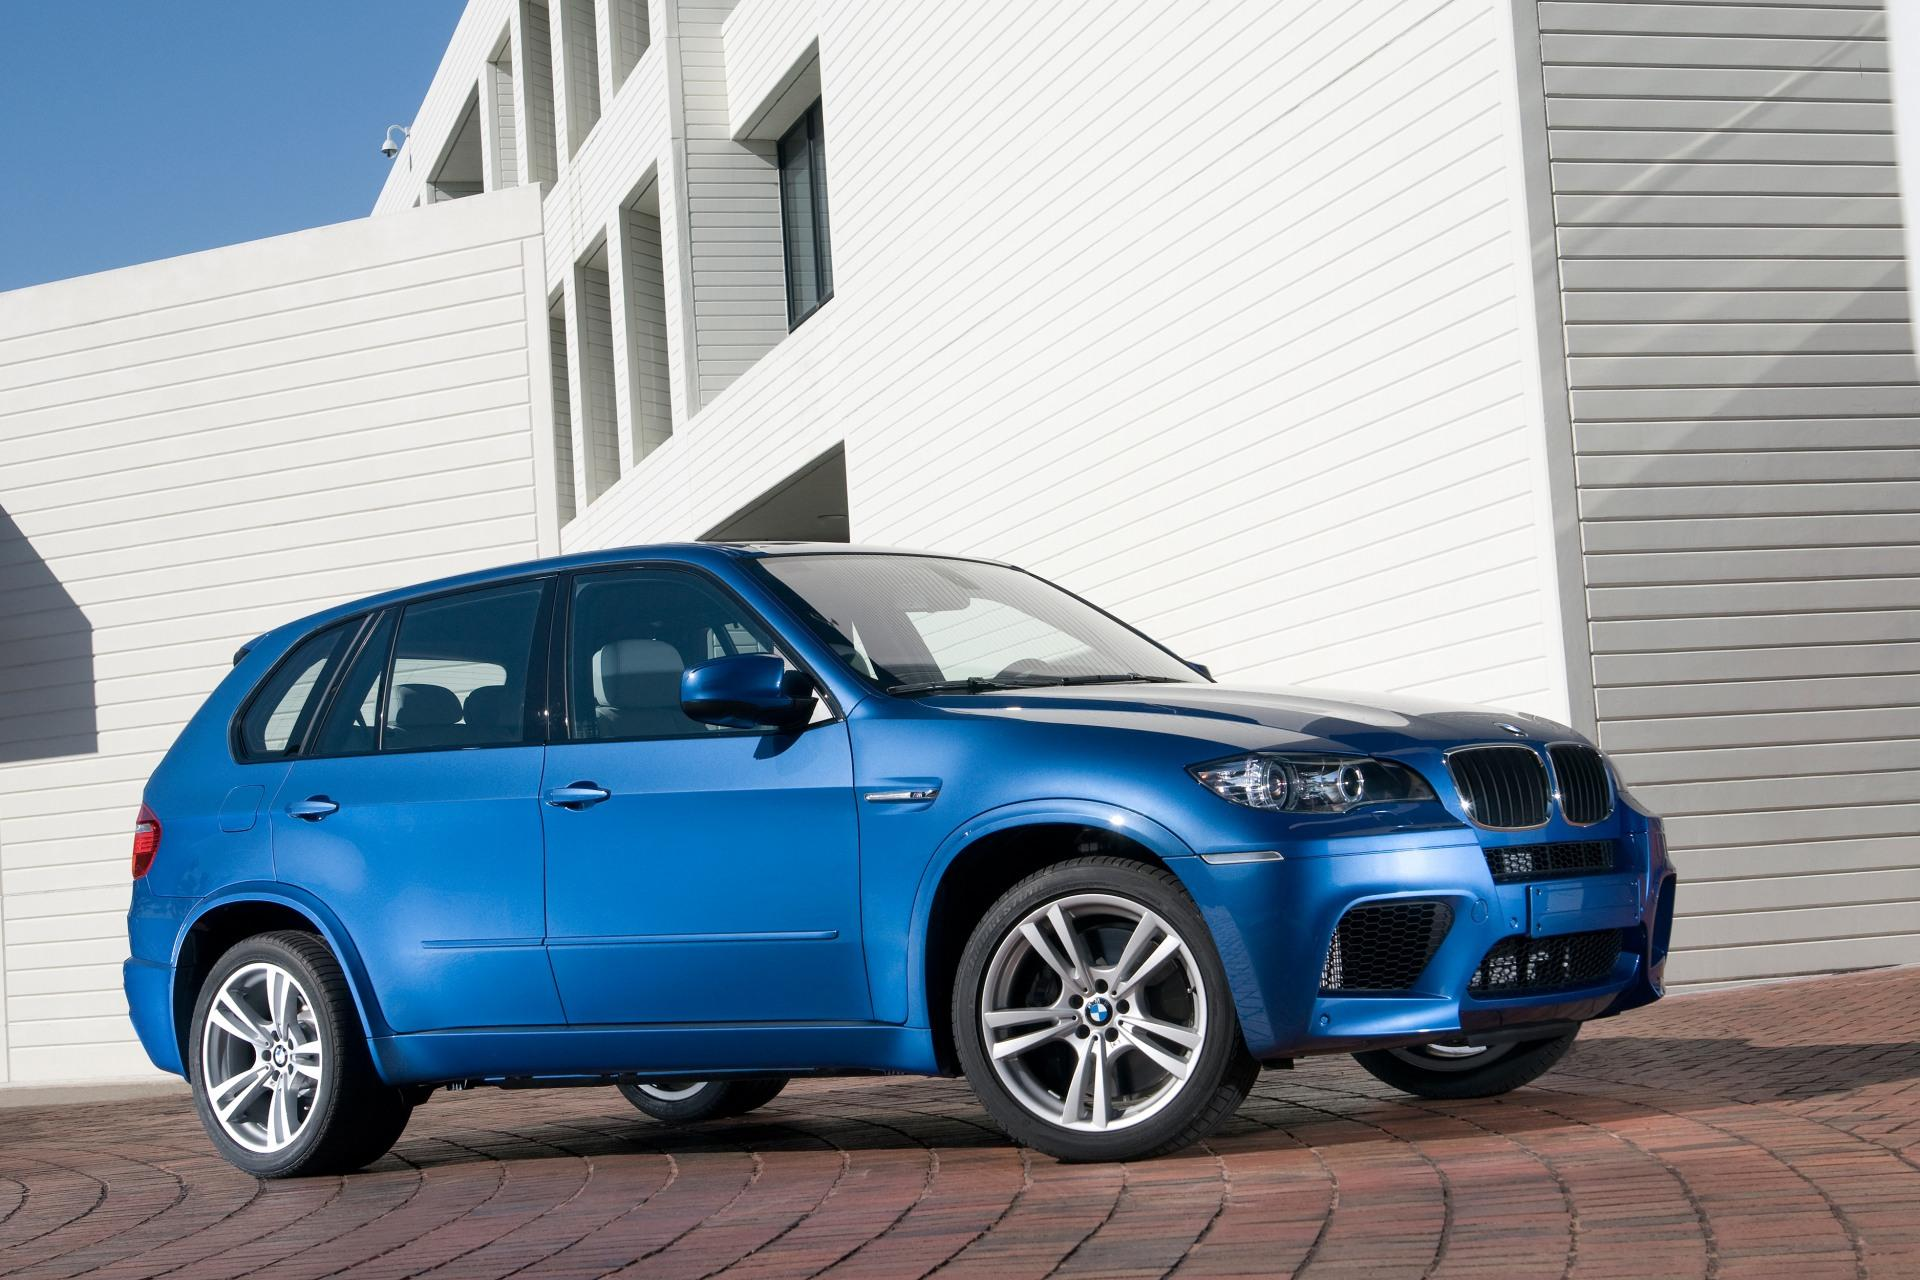 2010 bmw x5 m technical specifications and data engine dimensions and mechanical details. Black Bedroom Furniture Sets. Home Design Ideas